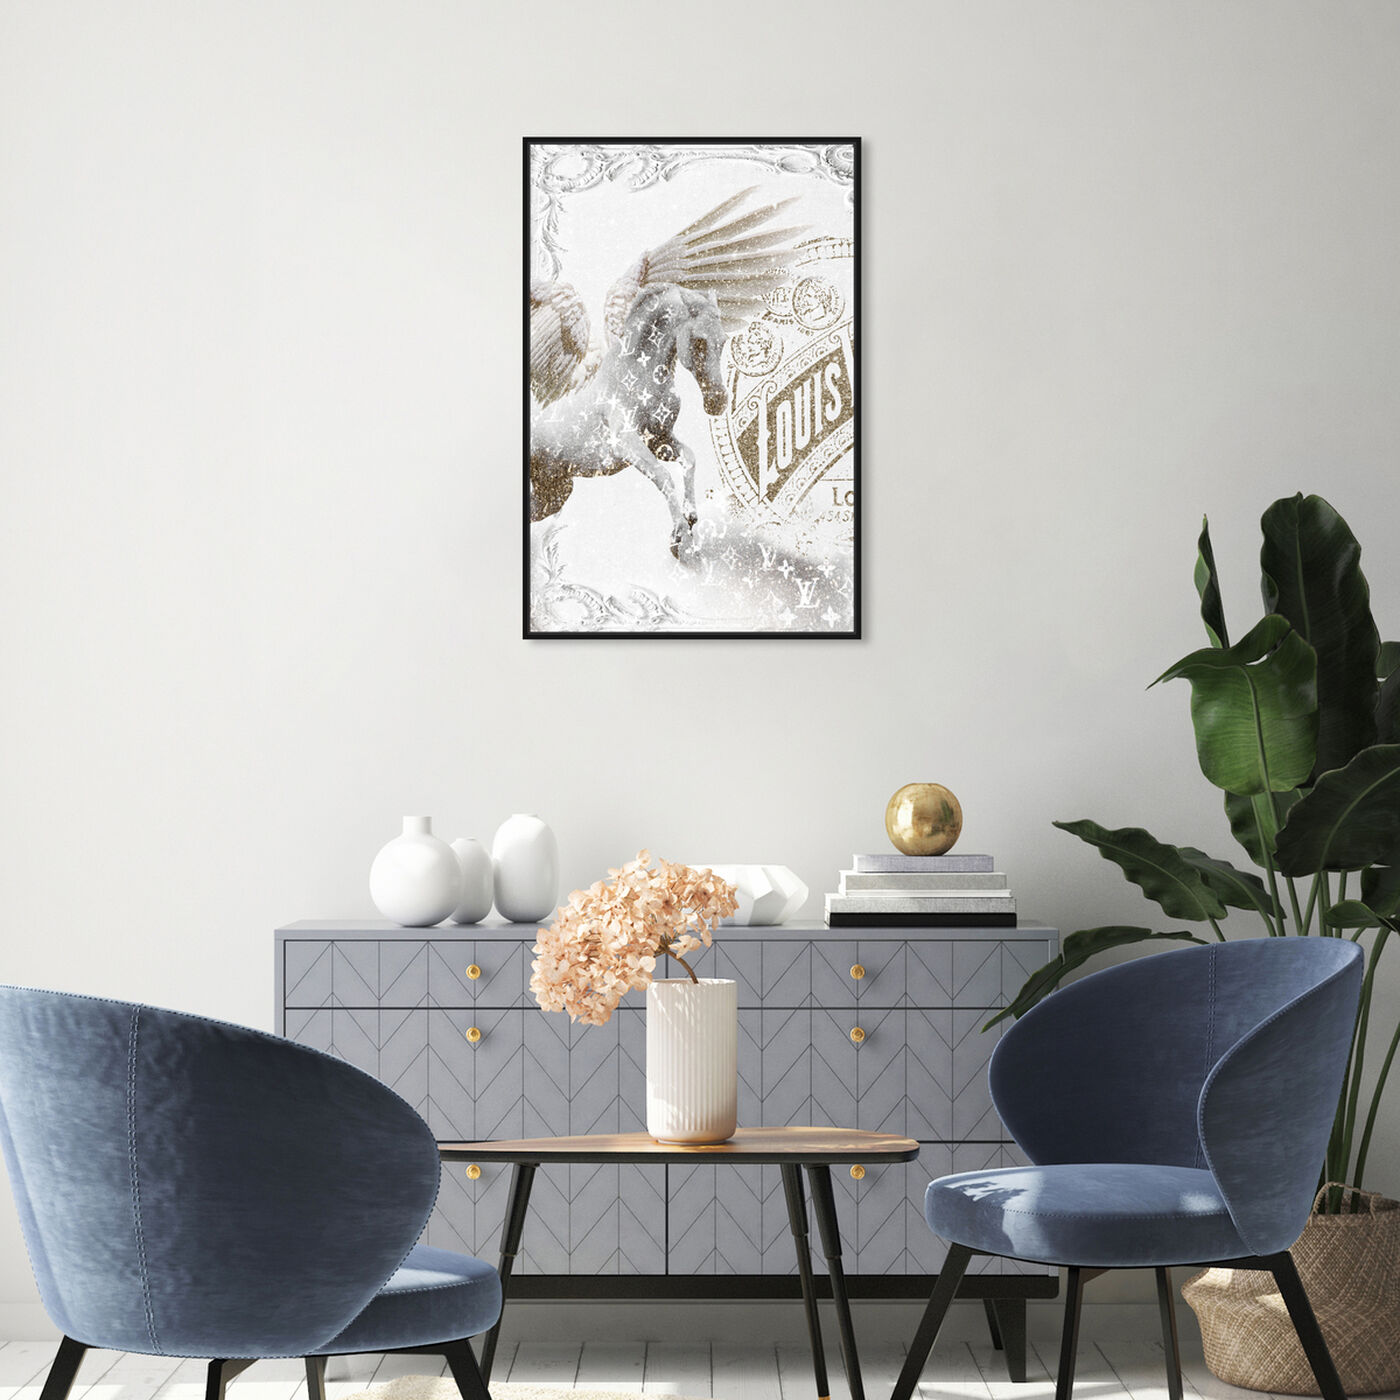 Hanging view of Double Vision 1 featuring fashion and glam and travel essentials art.